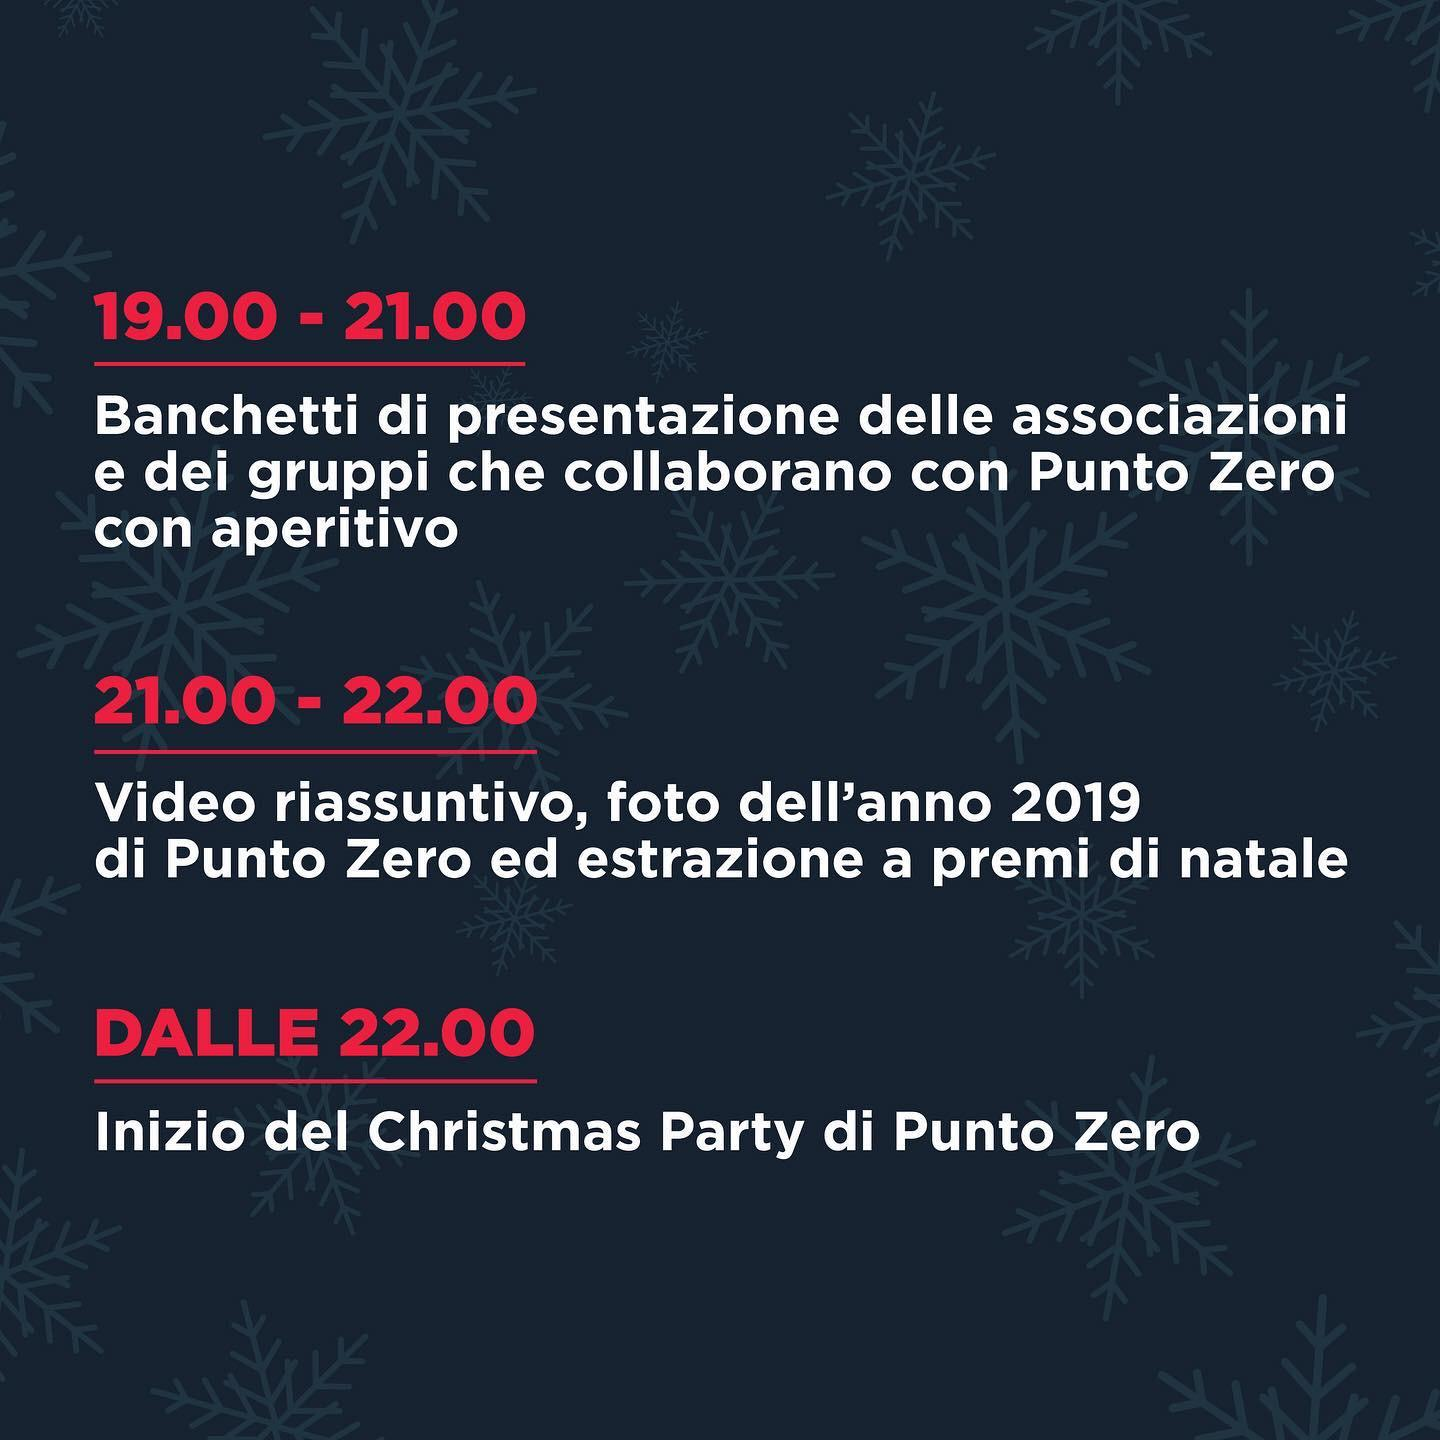 ChristmasParty2019-2